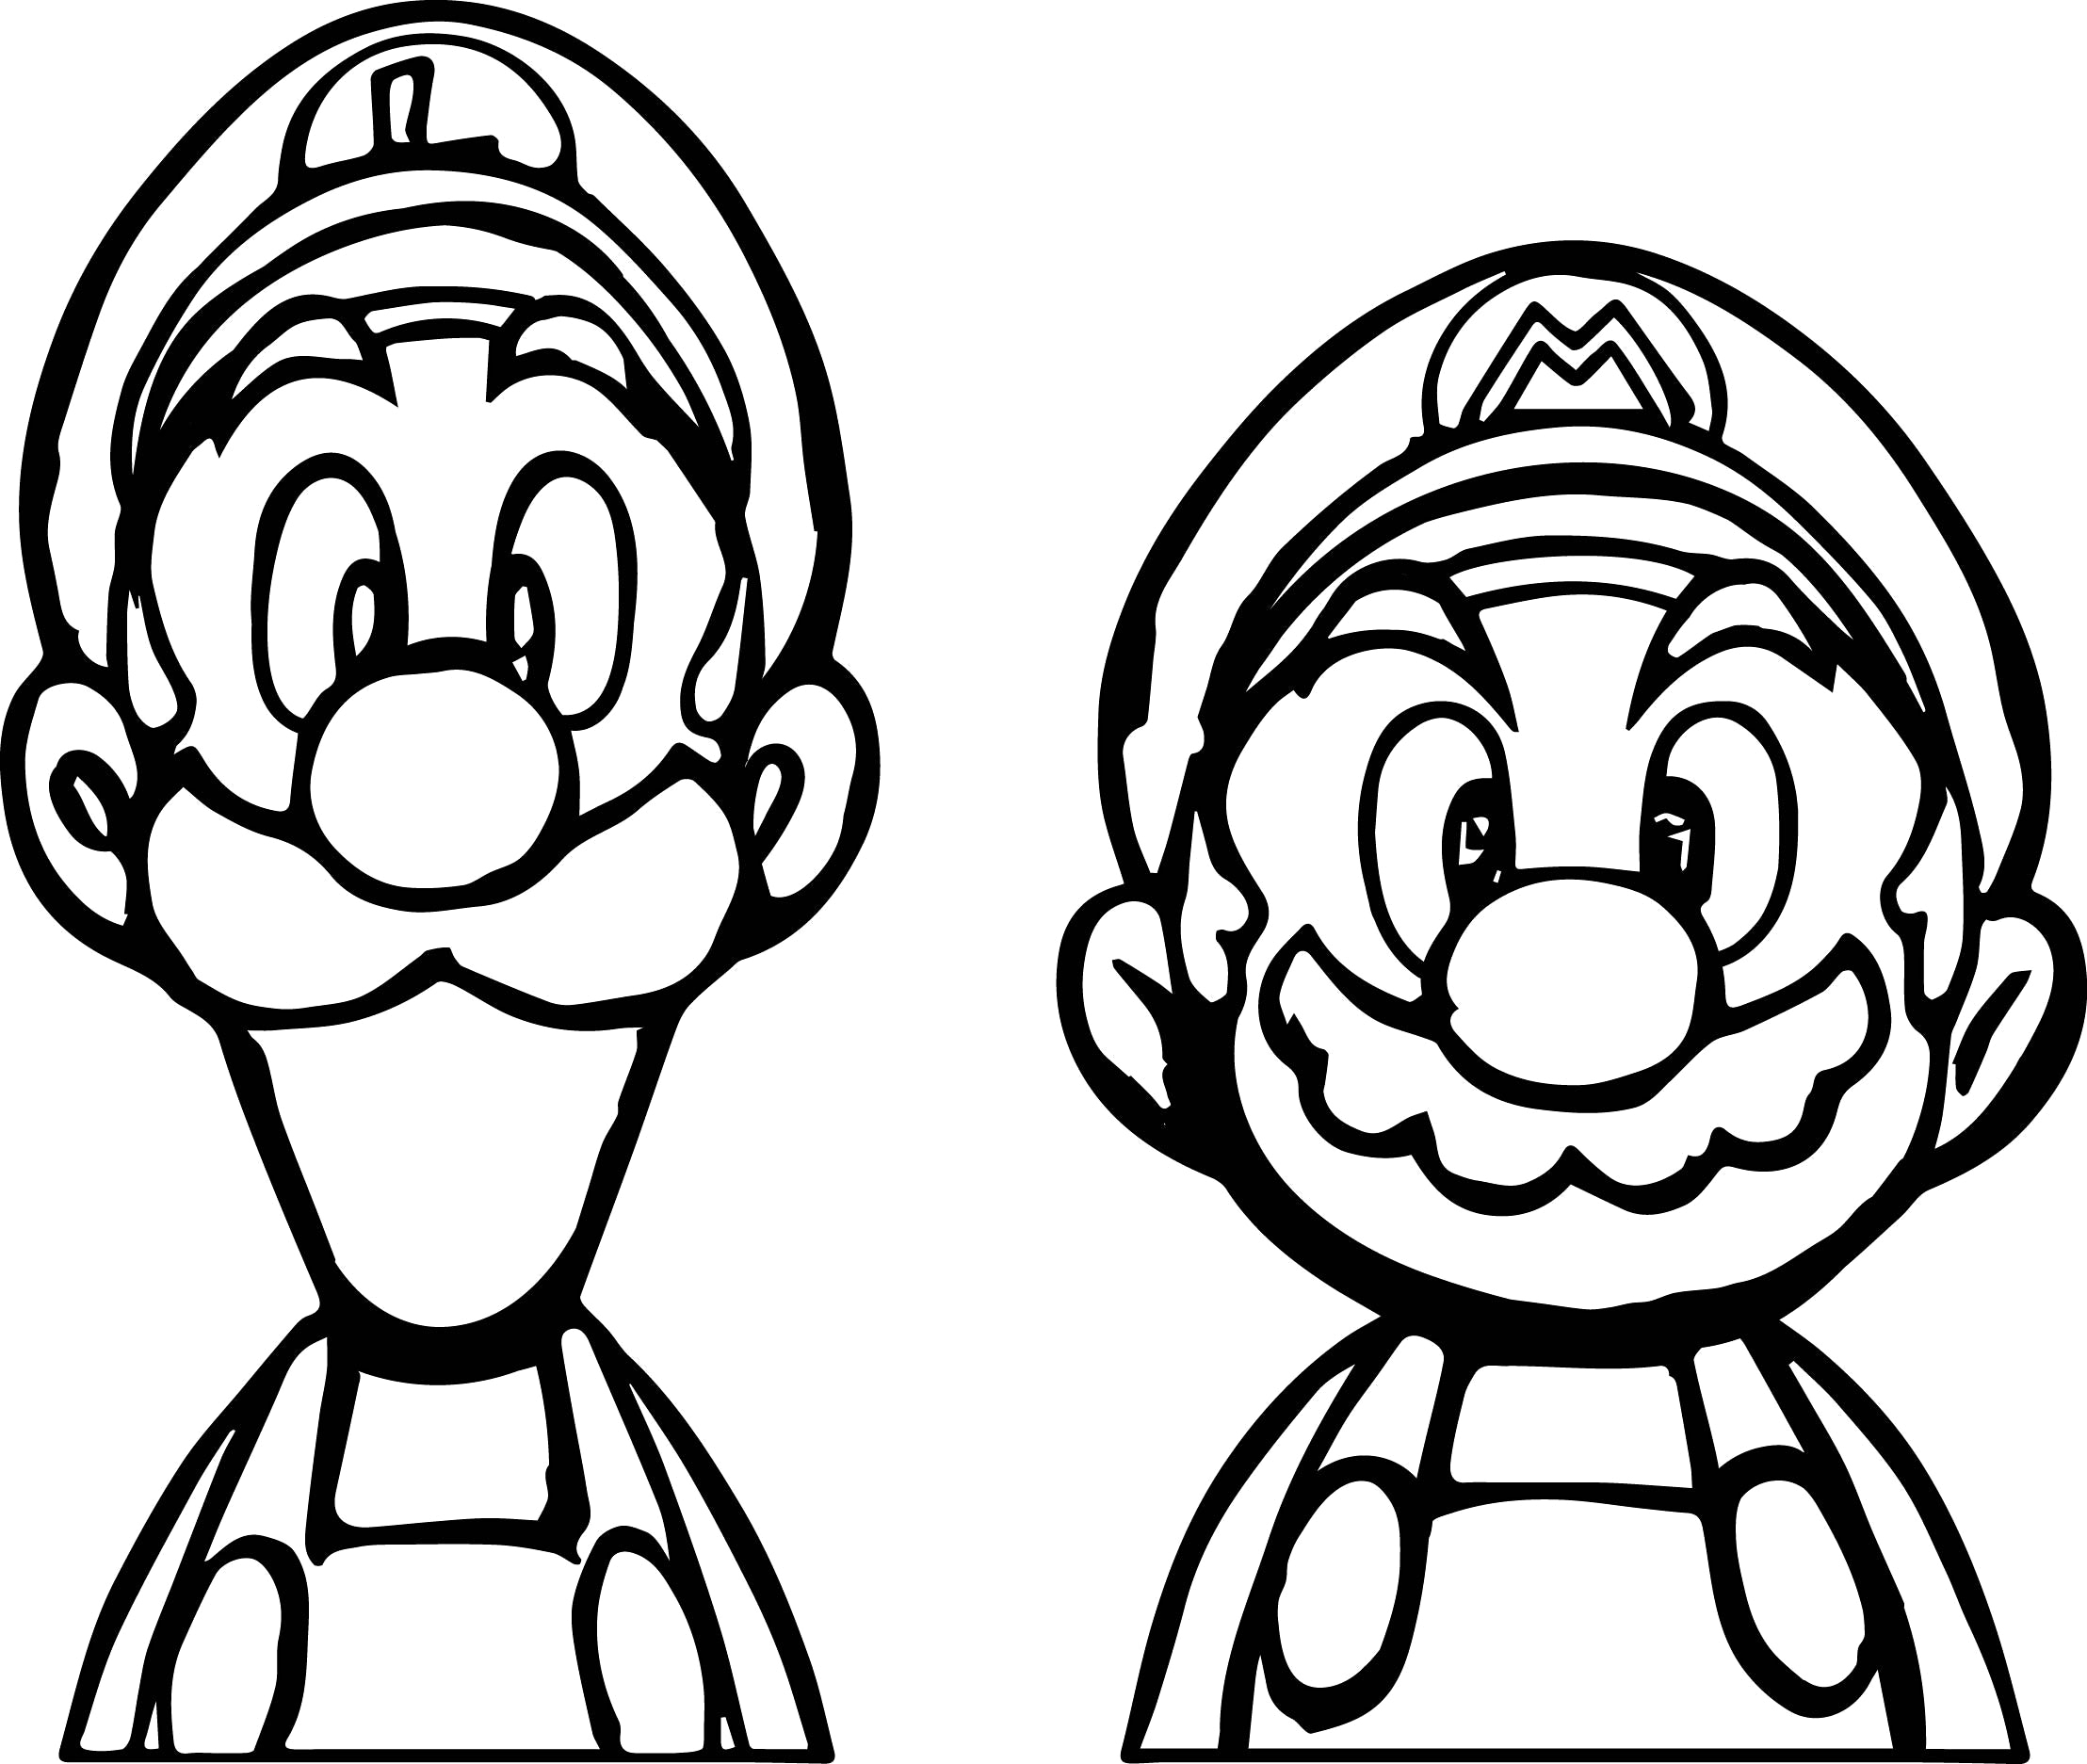 Super Mario Brothers toad Coloring Pages Mushroom Free Printable Gallery Of Super Mario Bros Coloring Pages to Print